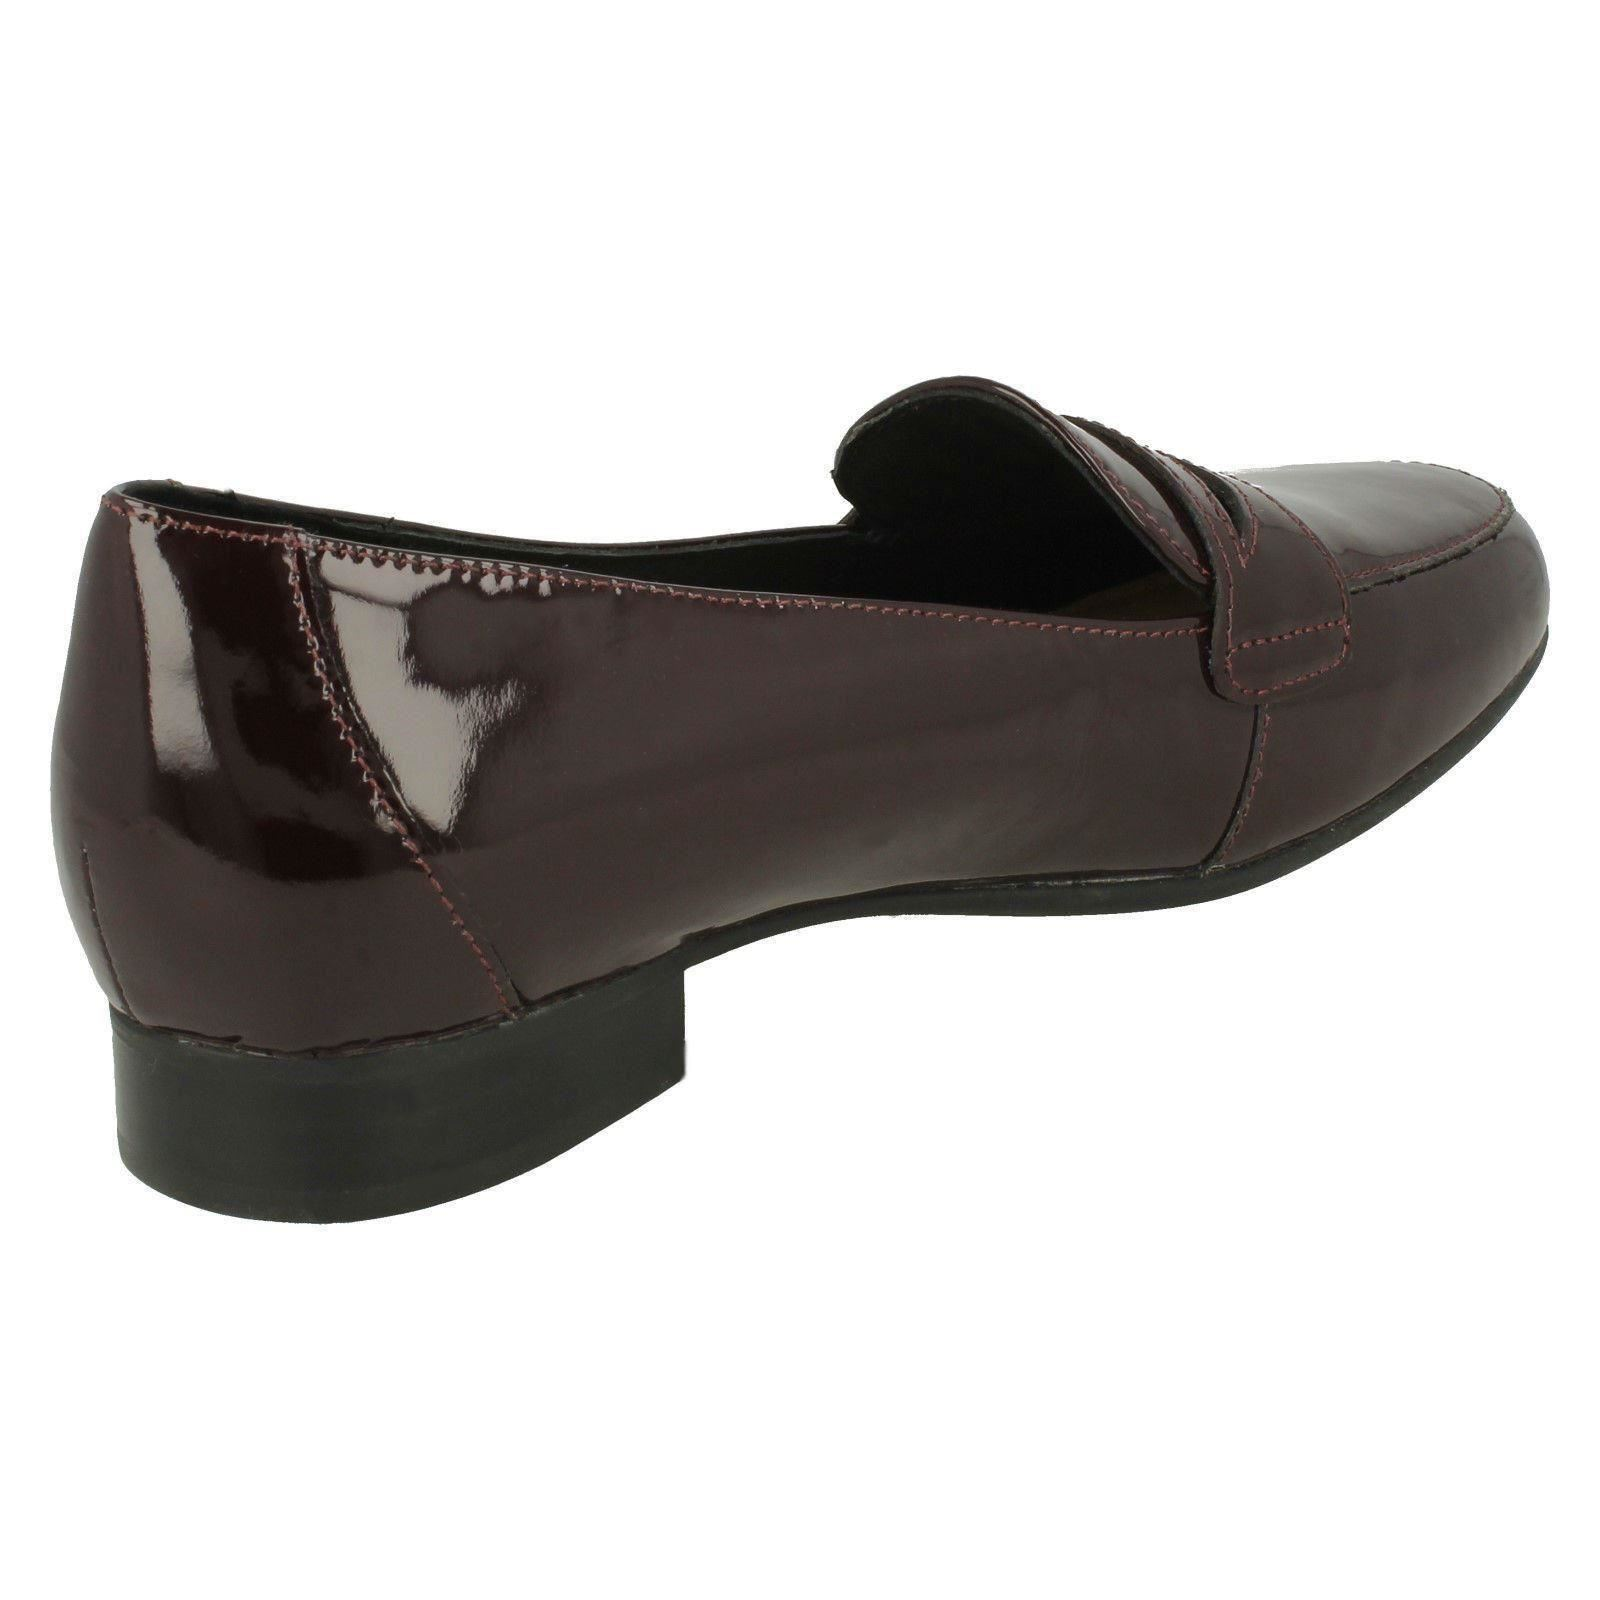 Ladies Clarks Loafer Style Heeled Shoes Un Blush Go